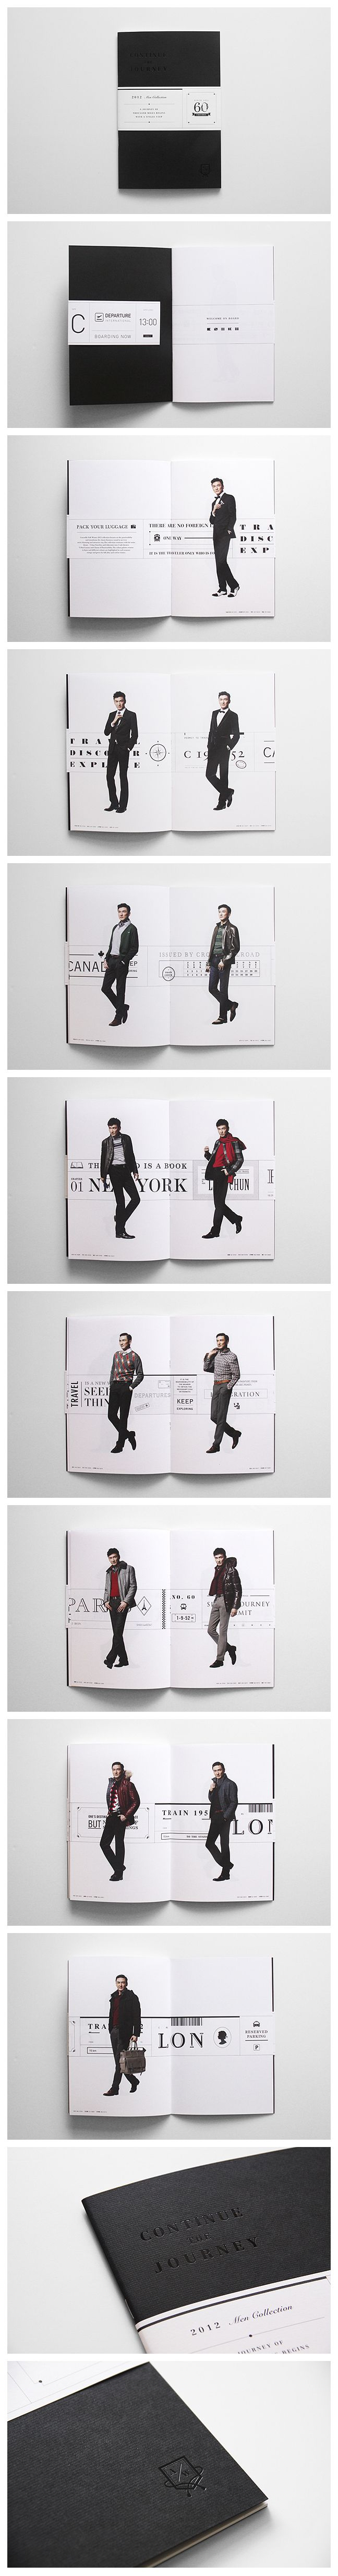 """CROCODILE AW12/12 CATALOG Base on the theme """"Urban Traveler"""", we have designed the catalog for Crocodile AW12/12 collection. http://www.blow.hk"""